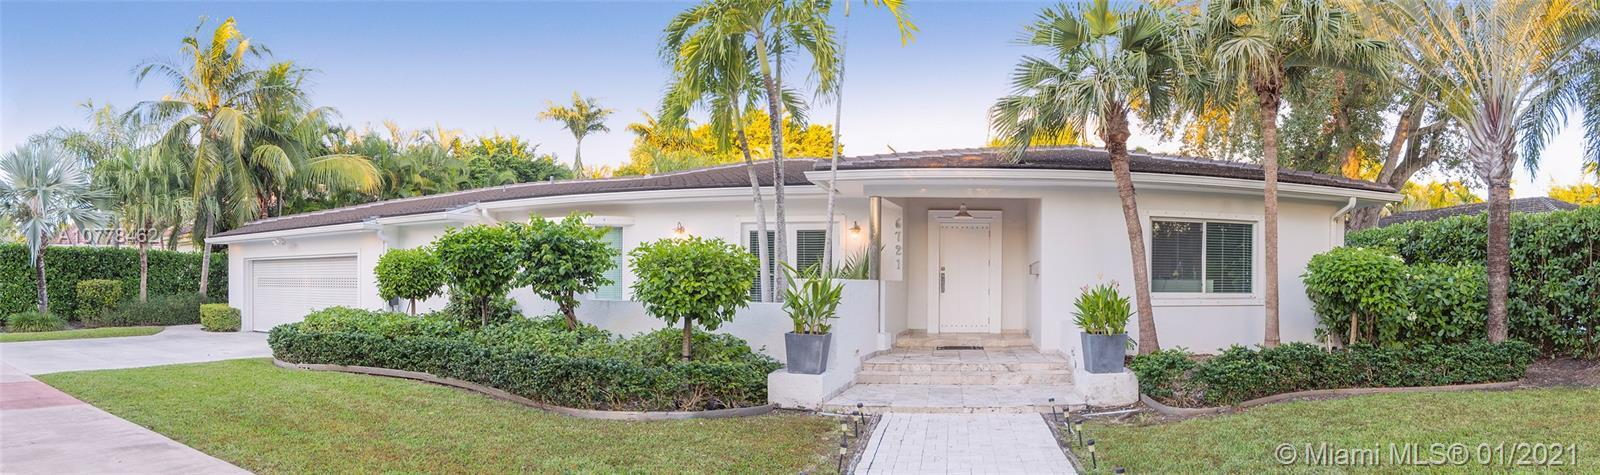 Come enjoy this updated 5 Bedroom, 5 Bathroom home in South Gables that sits on an almost 14,000 sq